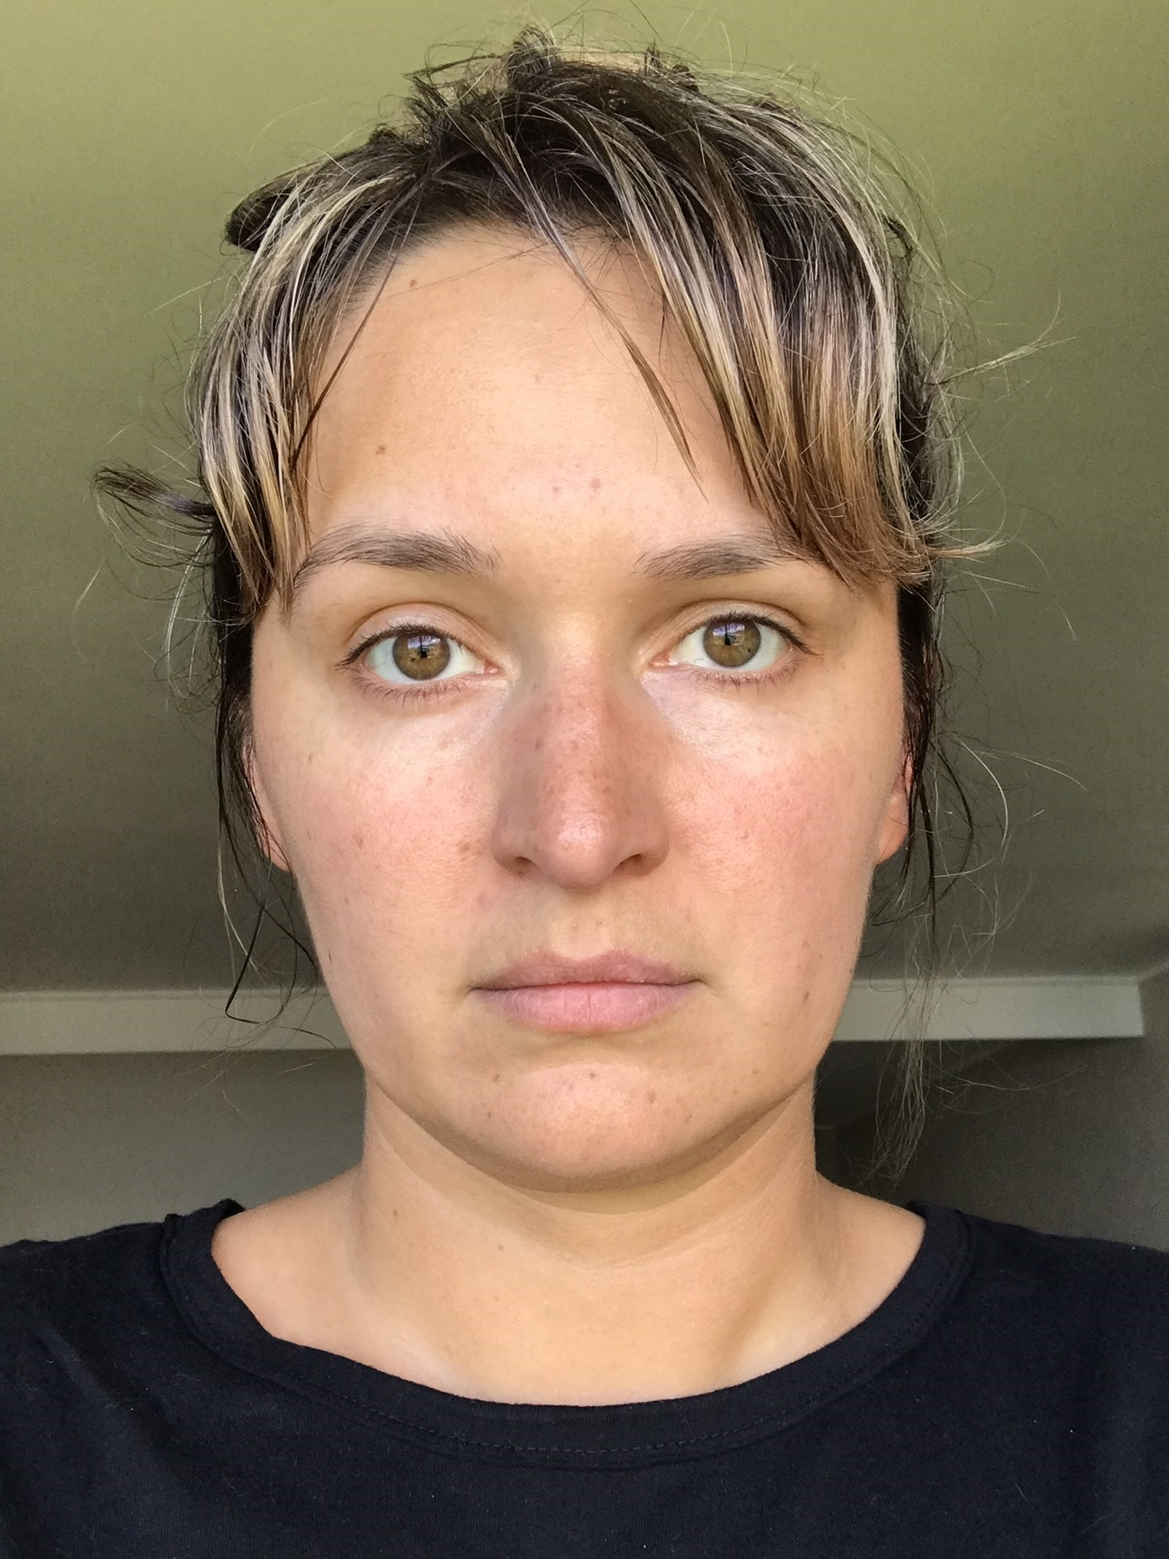 28 September 2018 :  My skin felt dry, flakey and rough. Redness was also an issue.